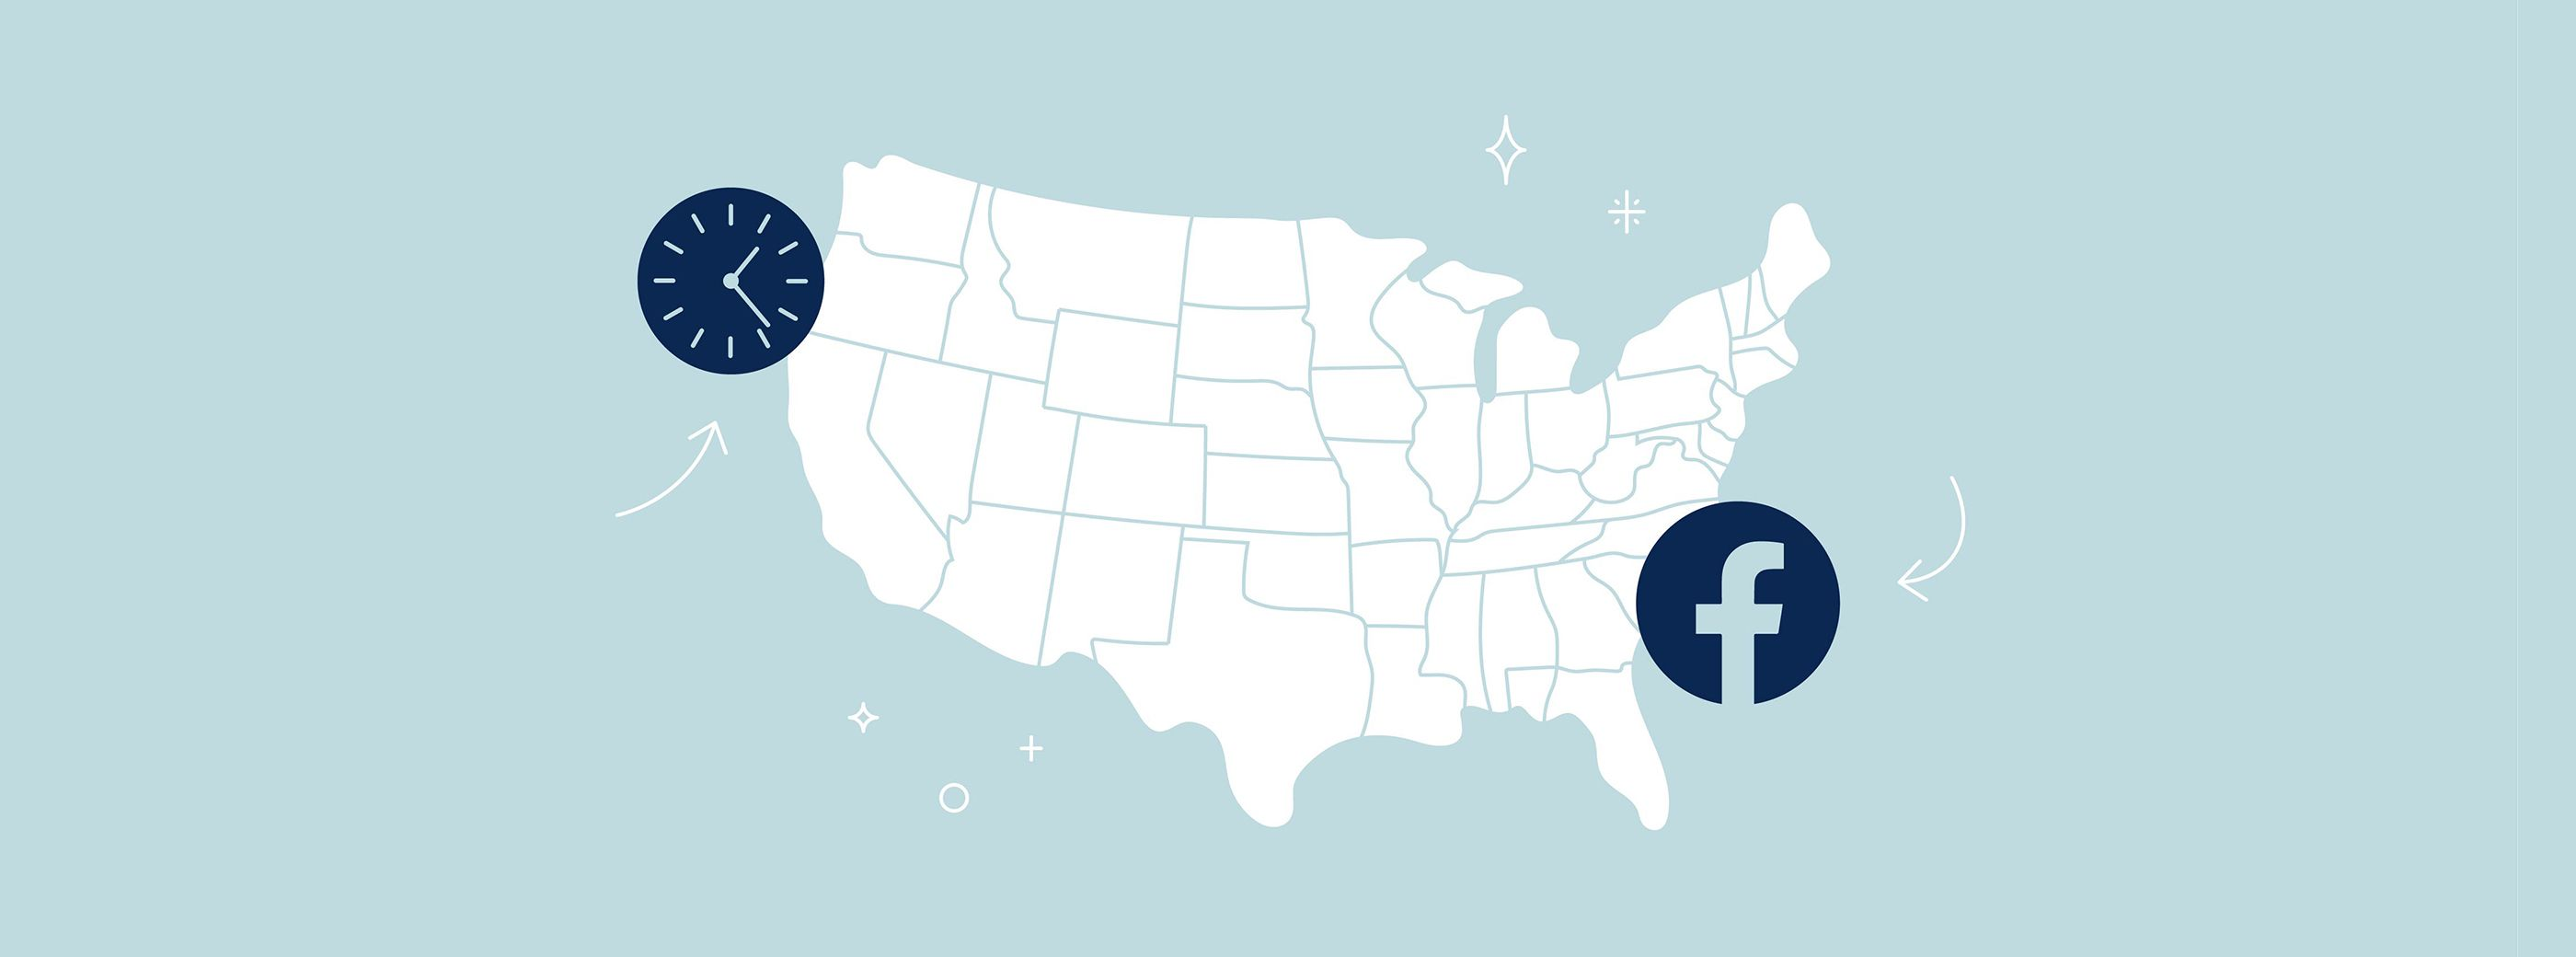 Read about Best Times to Post on Facebook for Better Engagement, on PLANOLY